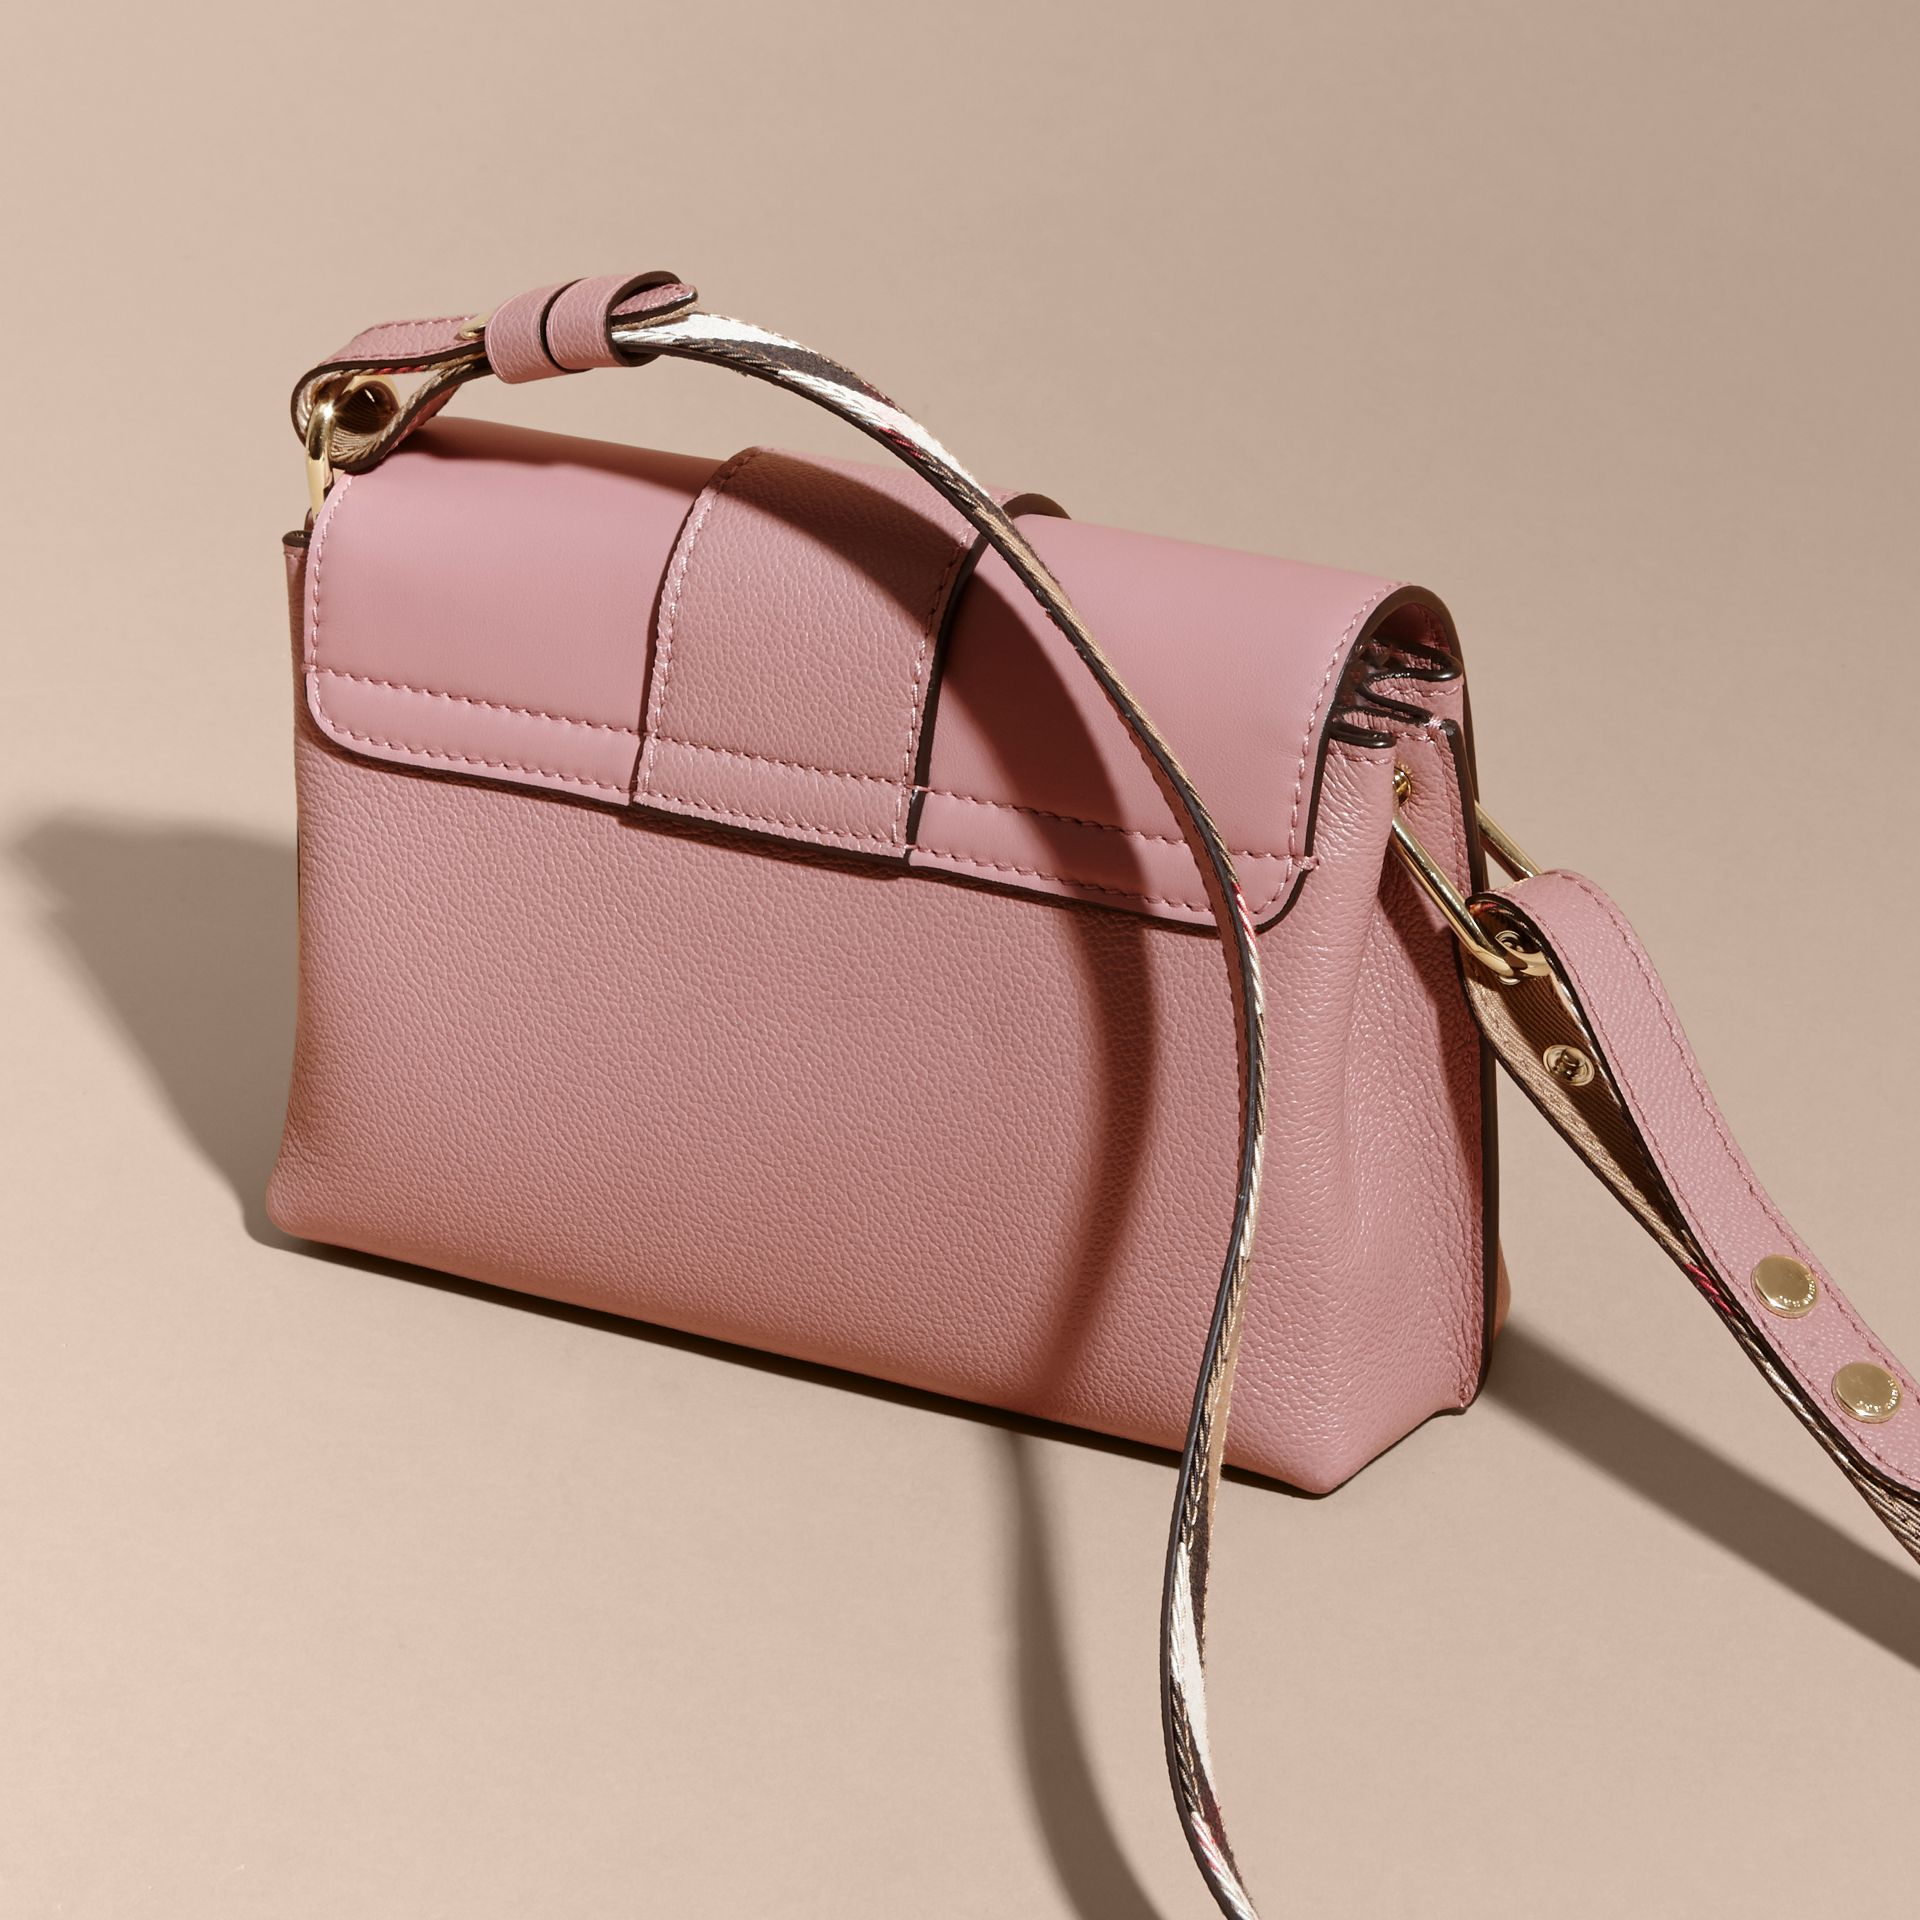 The Buckle Crossbody Bag in Leather in Dusty Pink - gallery image 5